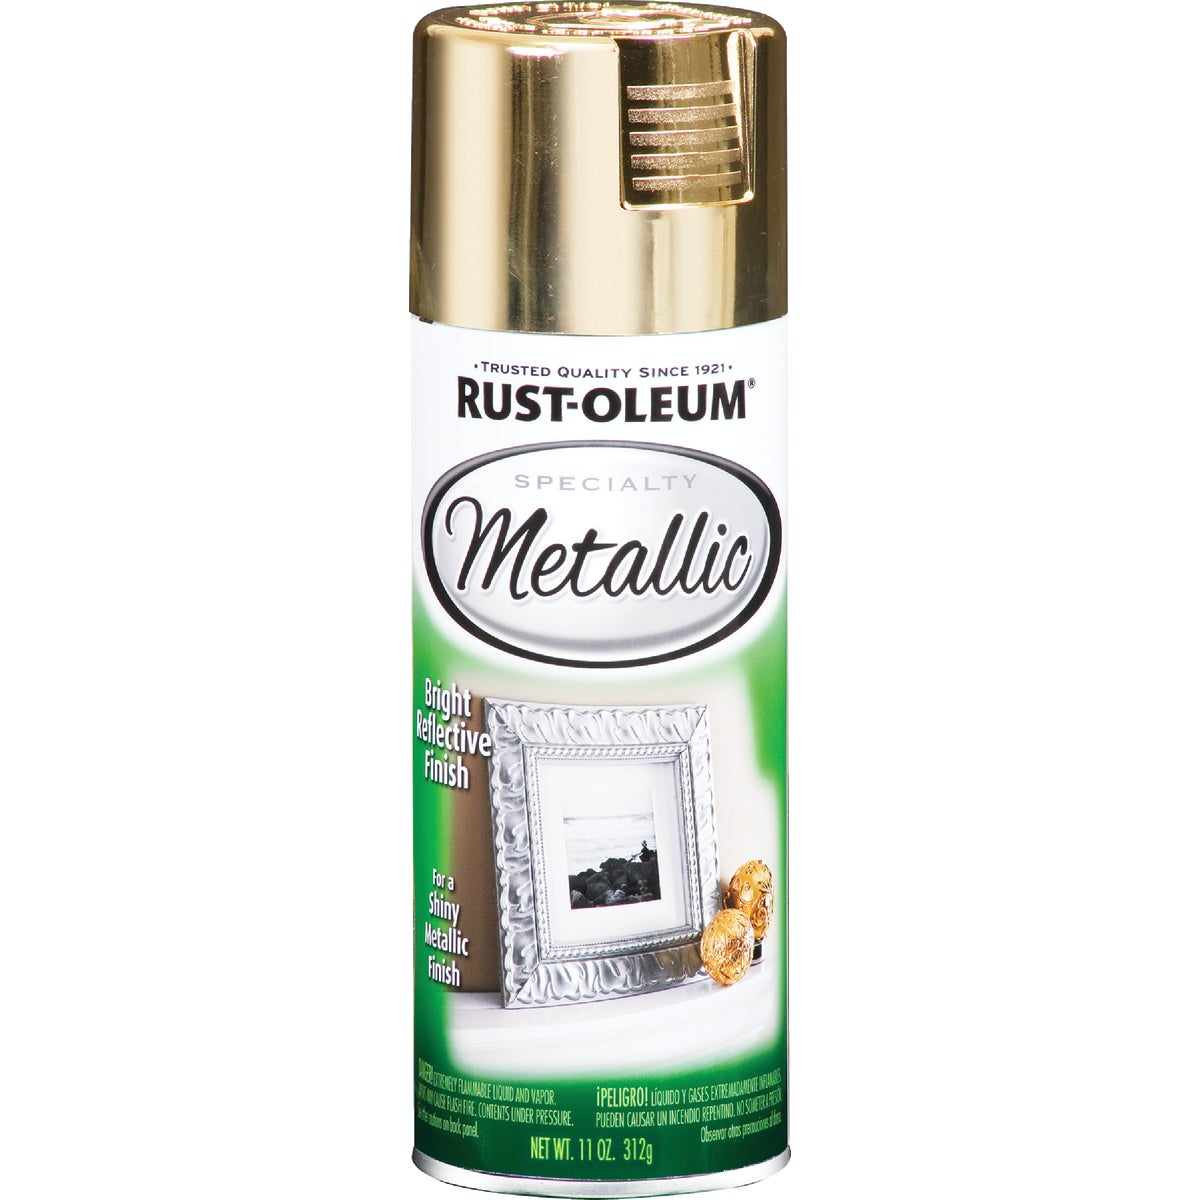 GOLD METALIC SPRAY PAINT - 1910-830 by Rustoleum